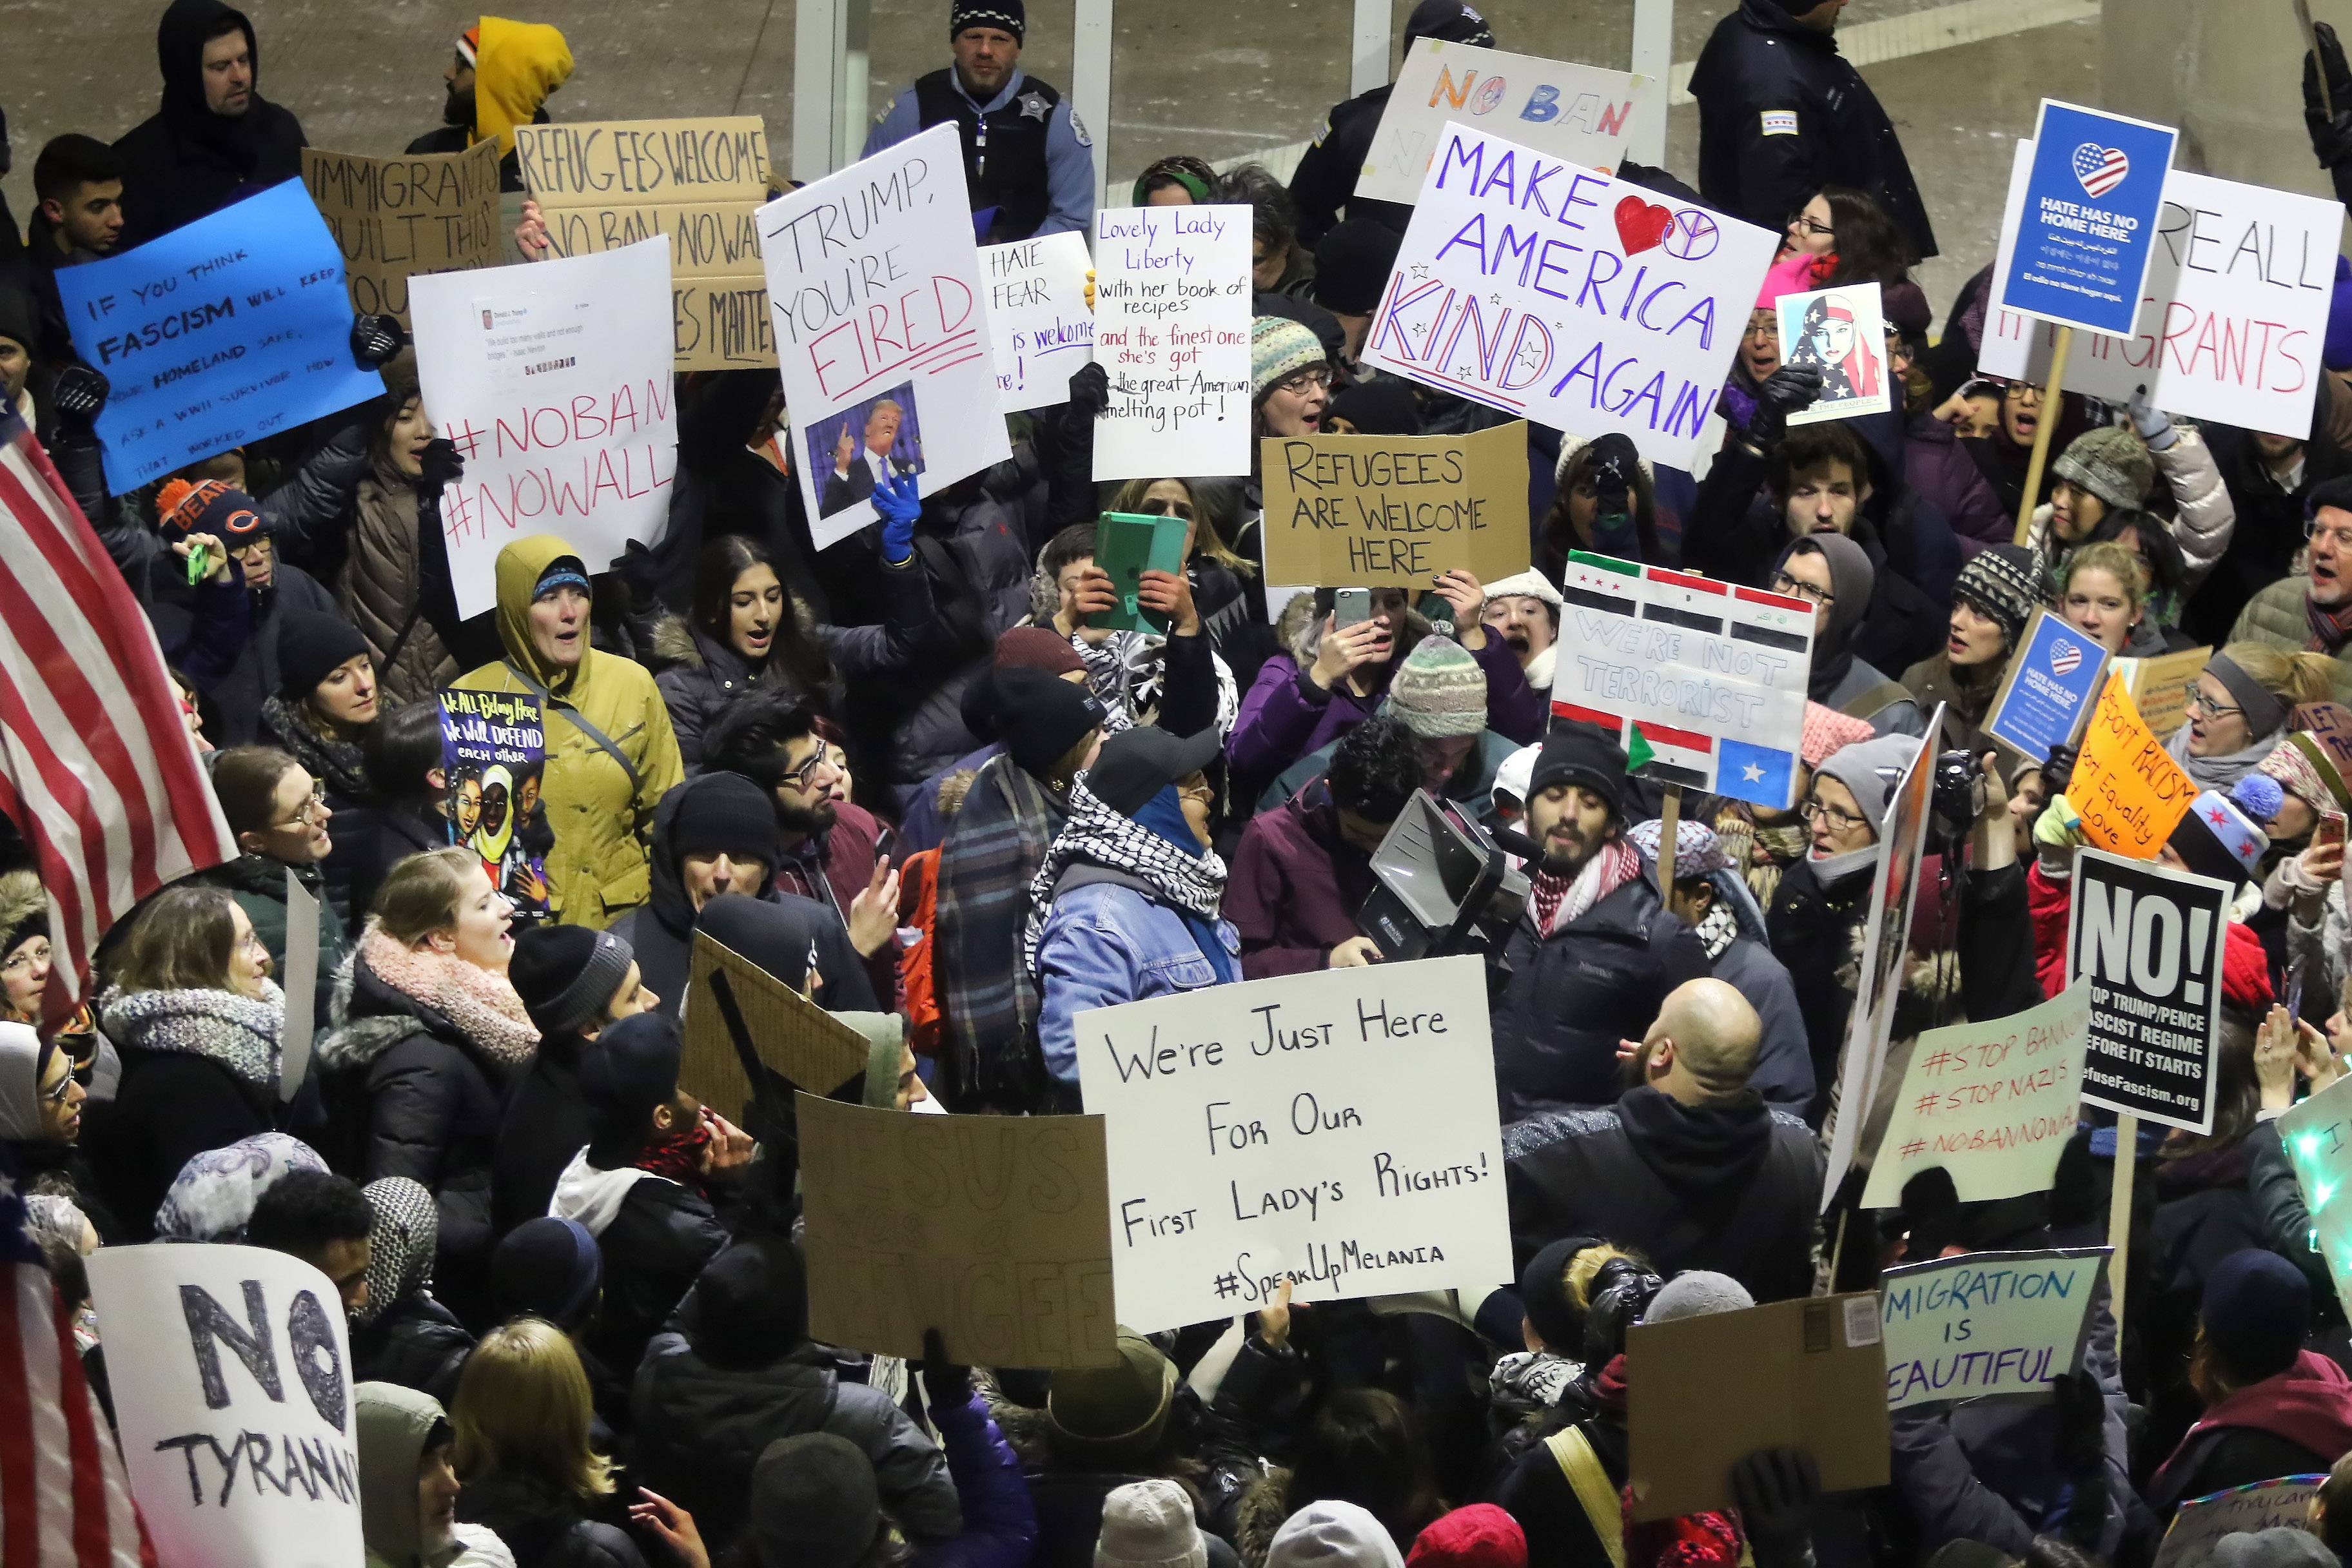 Hundreds protest for immigrants at O'Hare